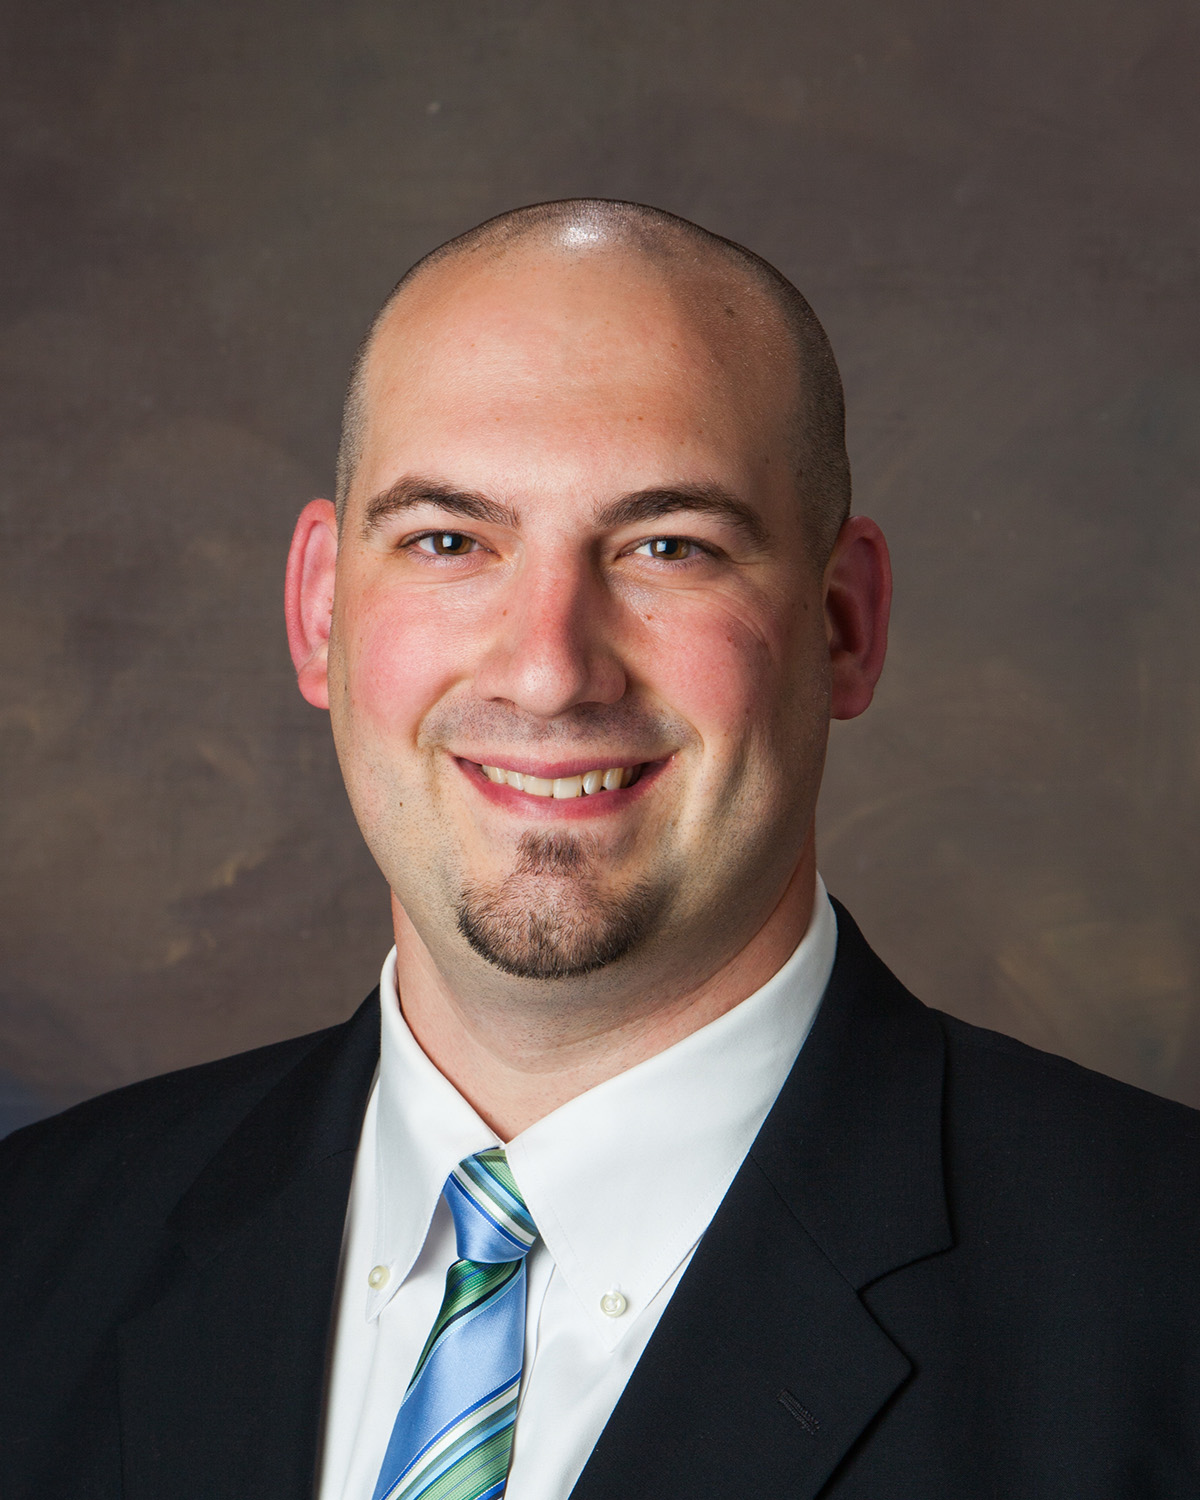 American physical therapy - He Is Also A Member Of The American Physical Therapy Association Apta And The Louisiana Physical Therapy Association Lpta Dr Fogle Has Been Practicing